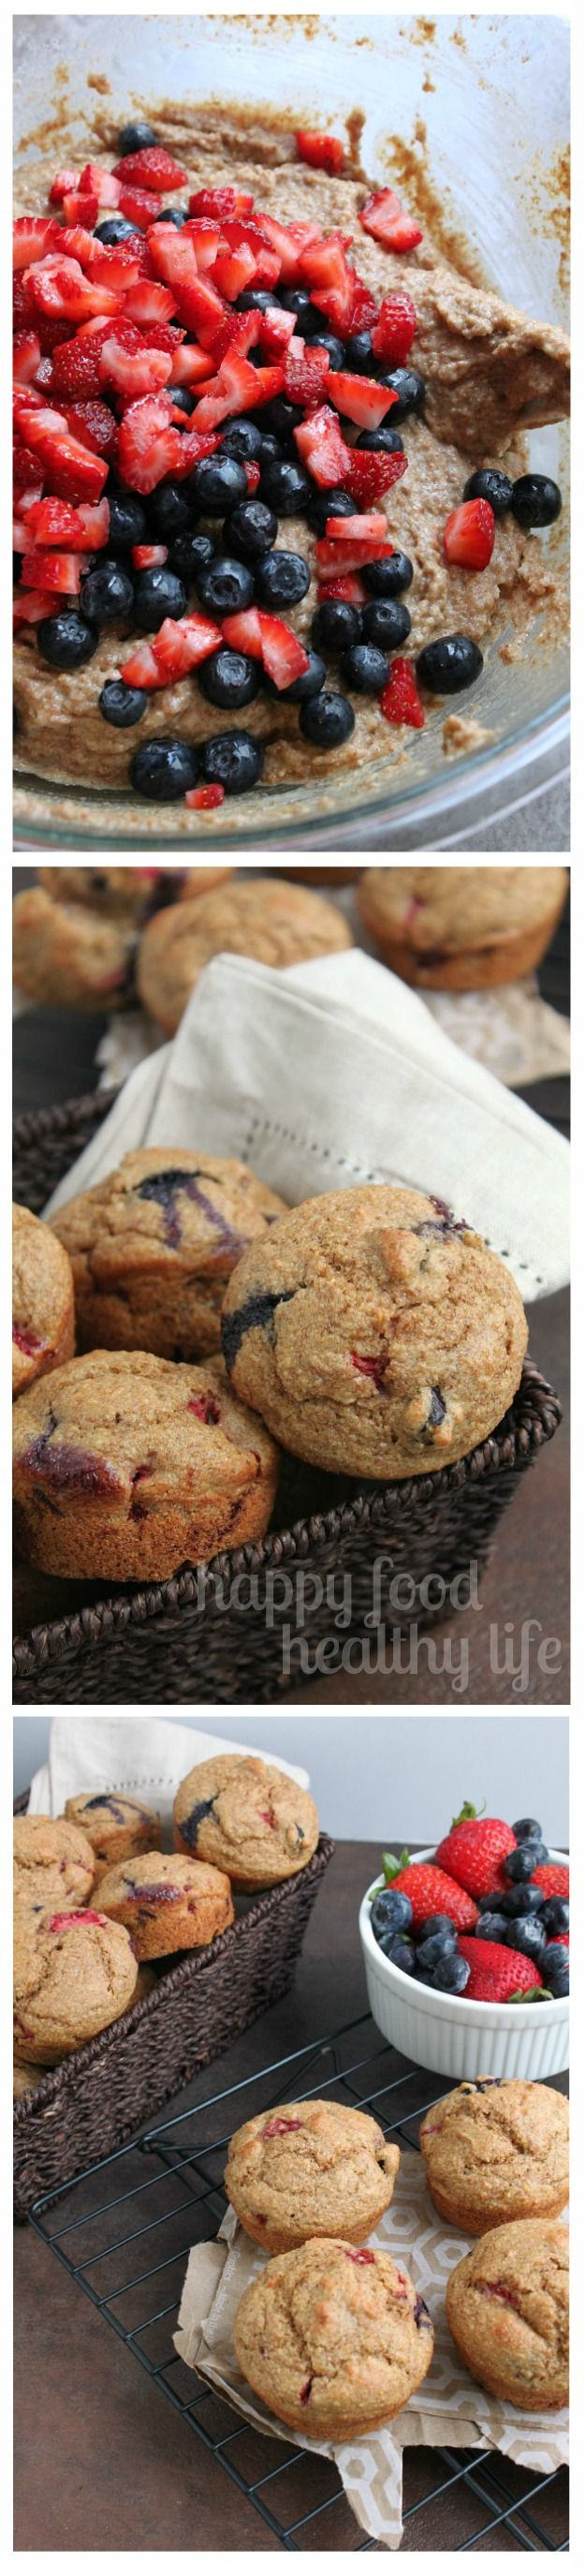 Berry Bran Muffins - the perfect on-the-go breakfast or snack, full of whole grains and seasonal berries. www.happyfoodhealthylife.com